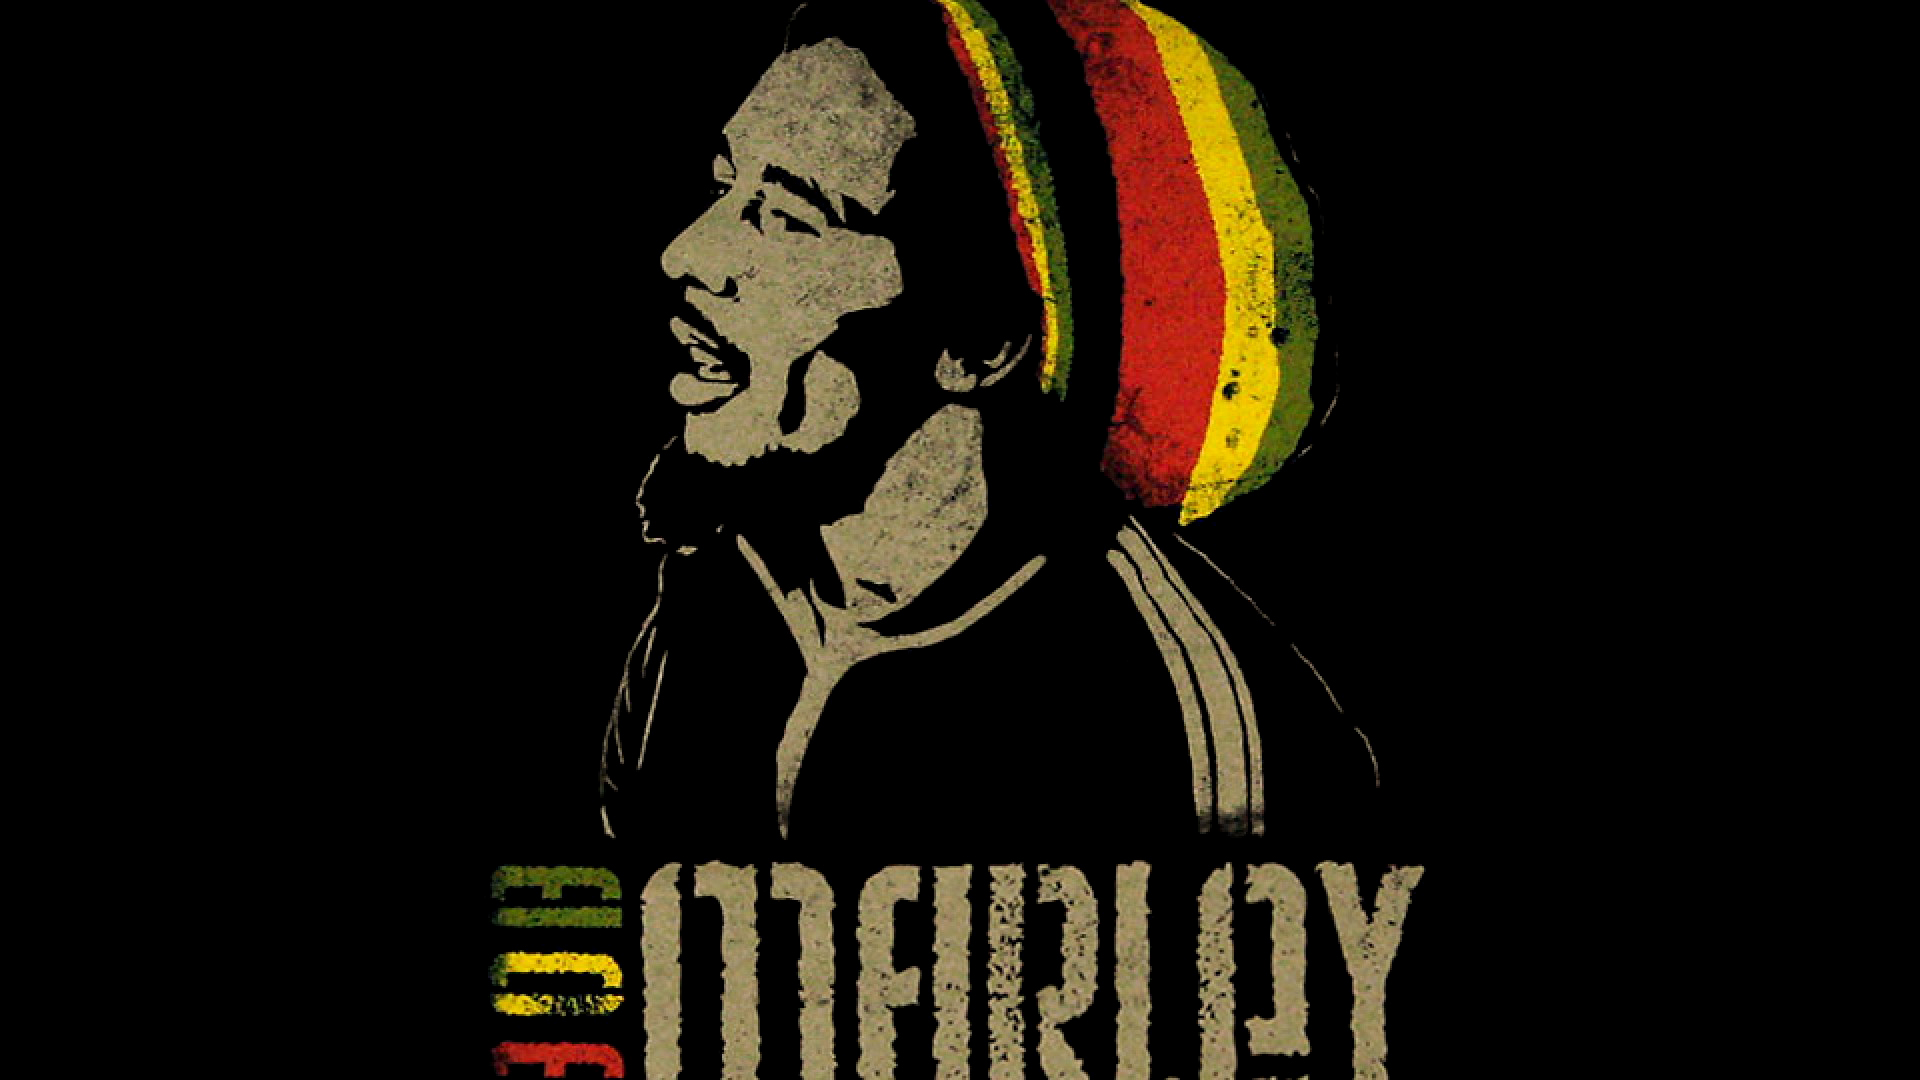 Bob marley mobile wallpaper hd